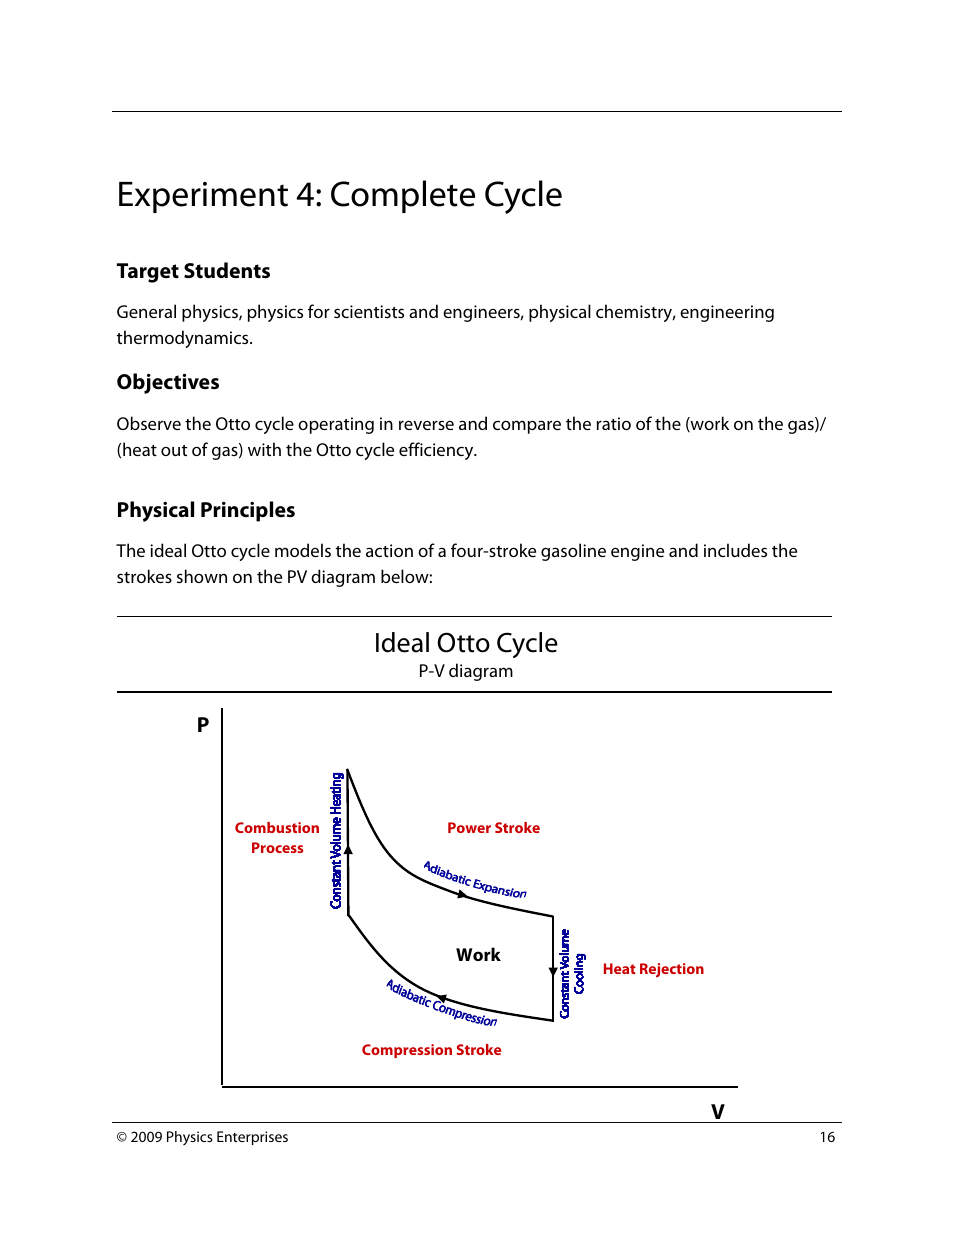 hight resolution of experiment 4 complete cycle ideal otto cycle pasco td 8565 adiabatic gas law apparatus user manual page 16 25